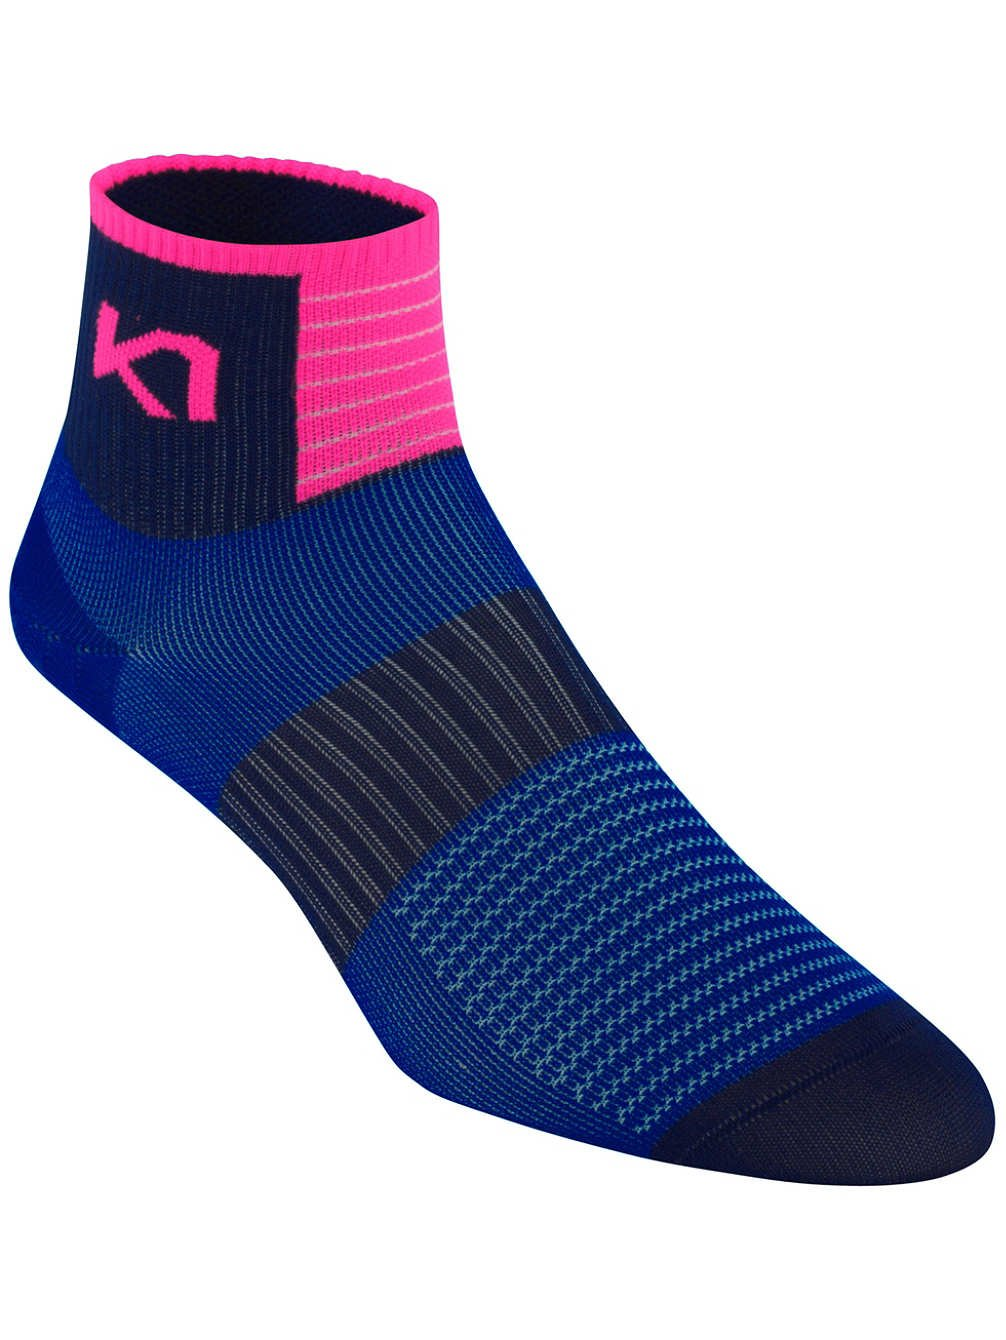 Kari Traa Toril Sock Women's - 640 royal Calzini 610940-ROY-3638